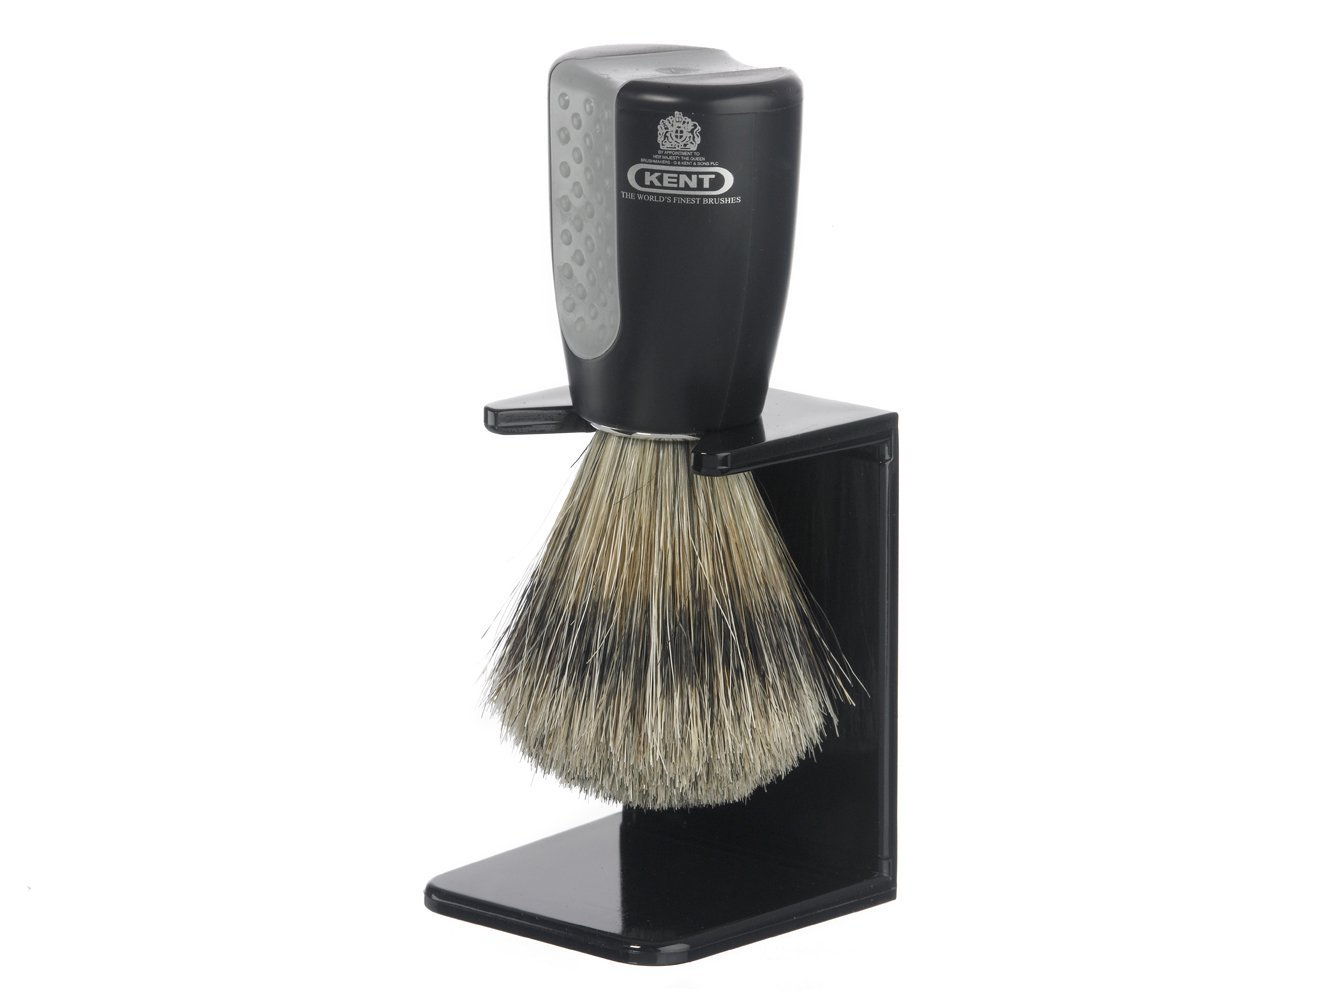 Kent Blended Bristle Brush and Stand Set